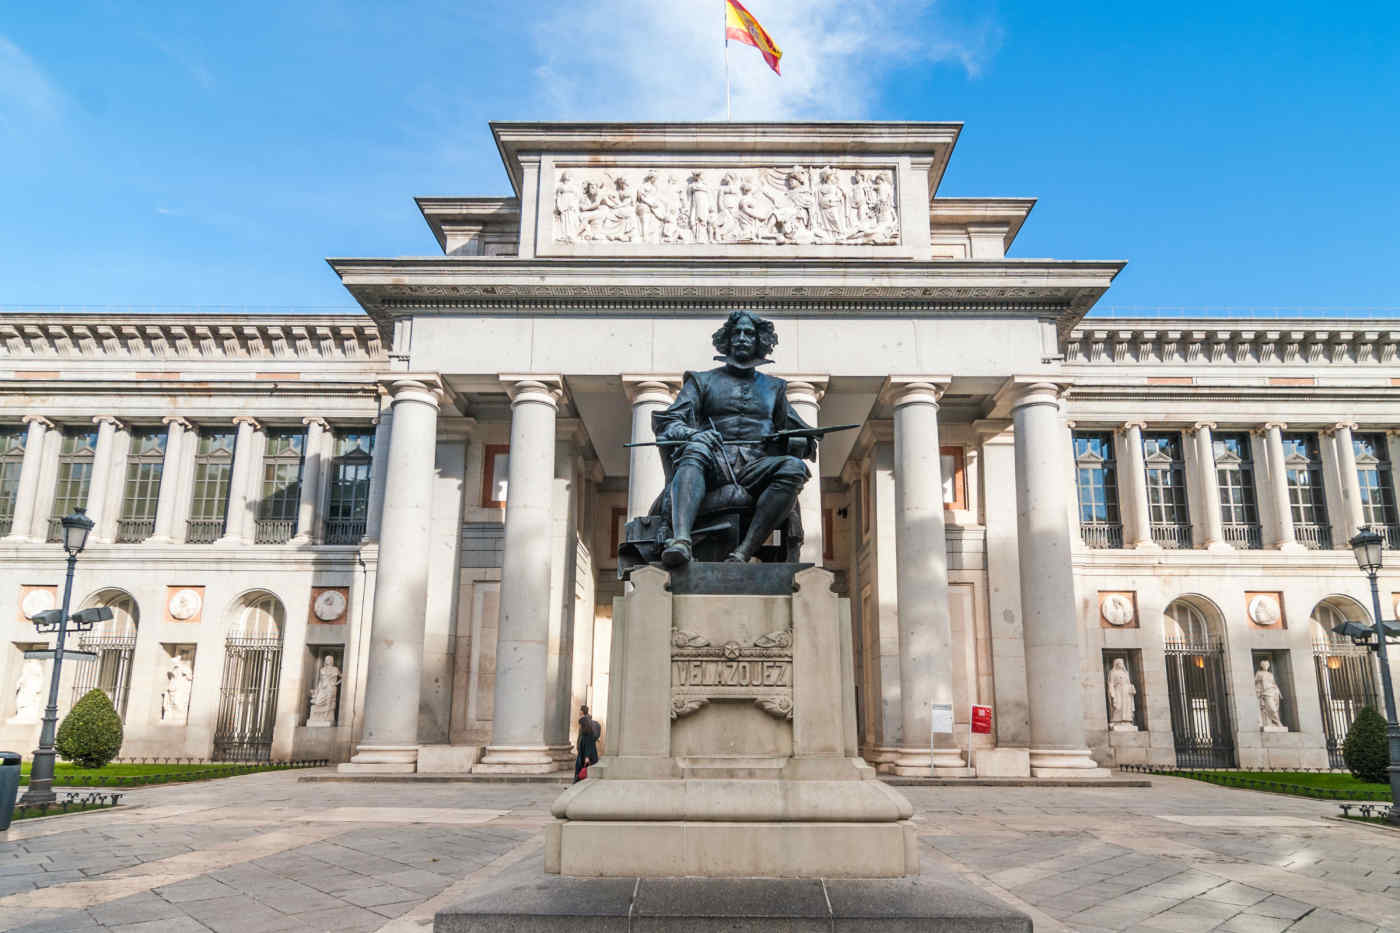 Museo Nacional del Prado in Madrid, Spain